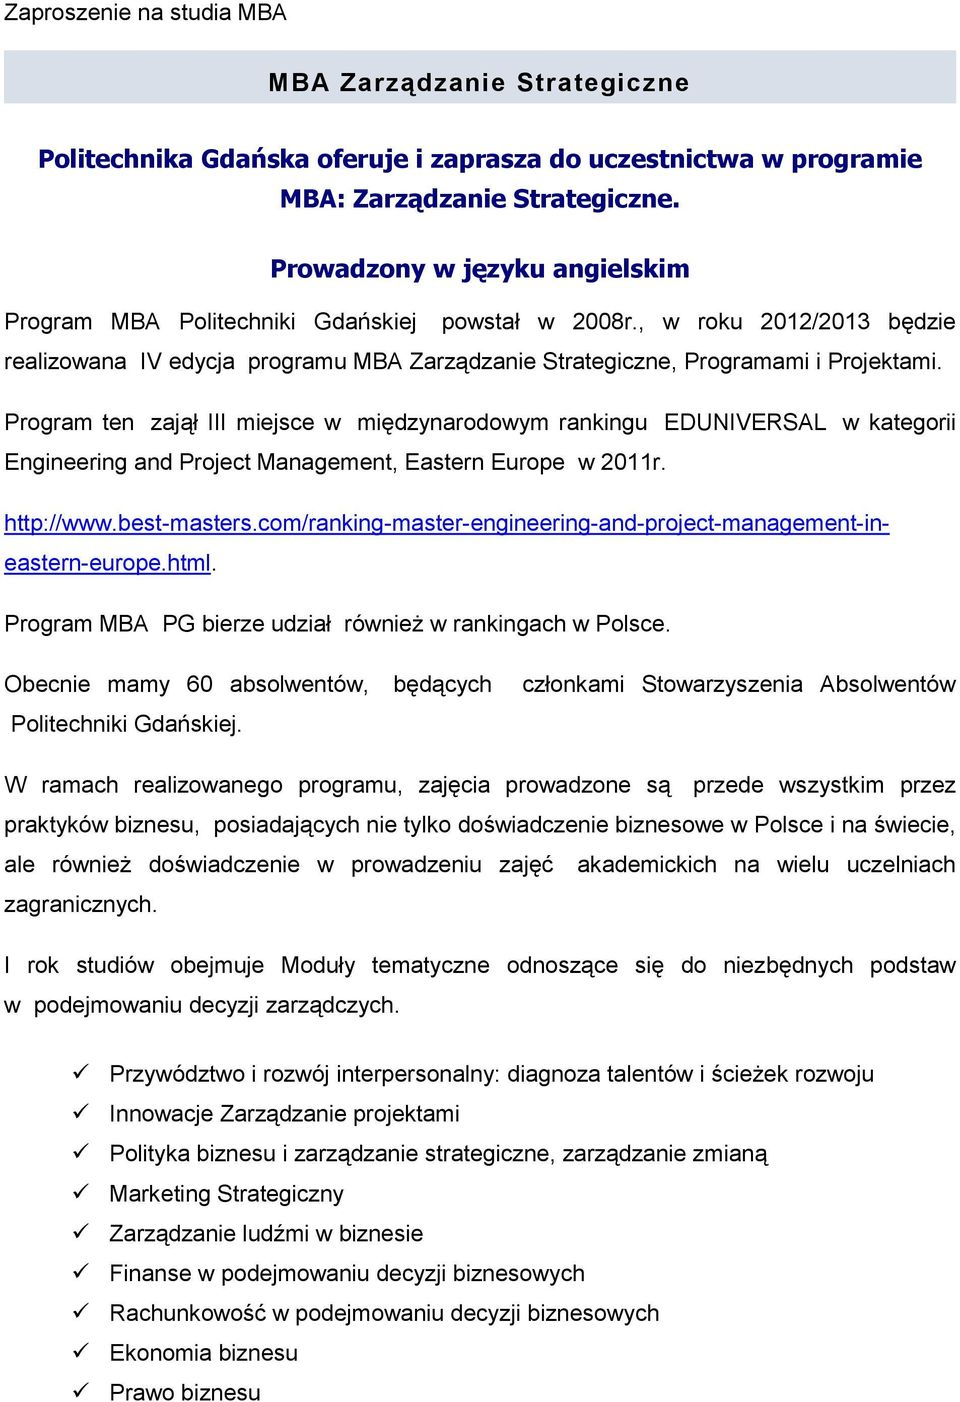 Program ten zajął III miejsce w międzynarodowym rankingu EDUNIVERSAL w kategorii Engineering and Project Management, Eastern Europe w 2011r. http://www.best-masters.